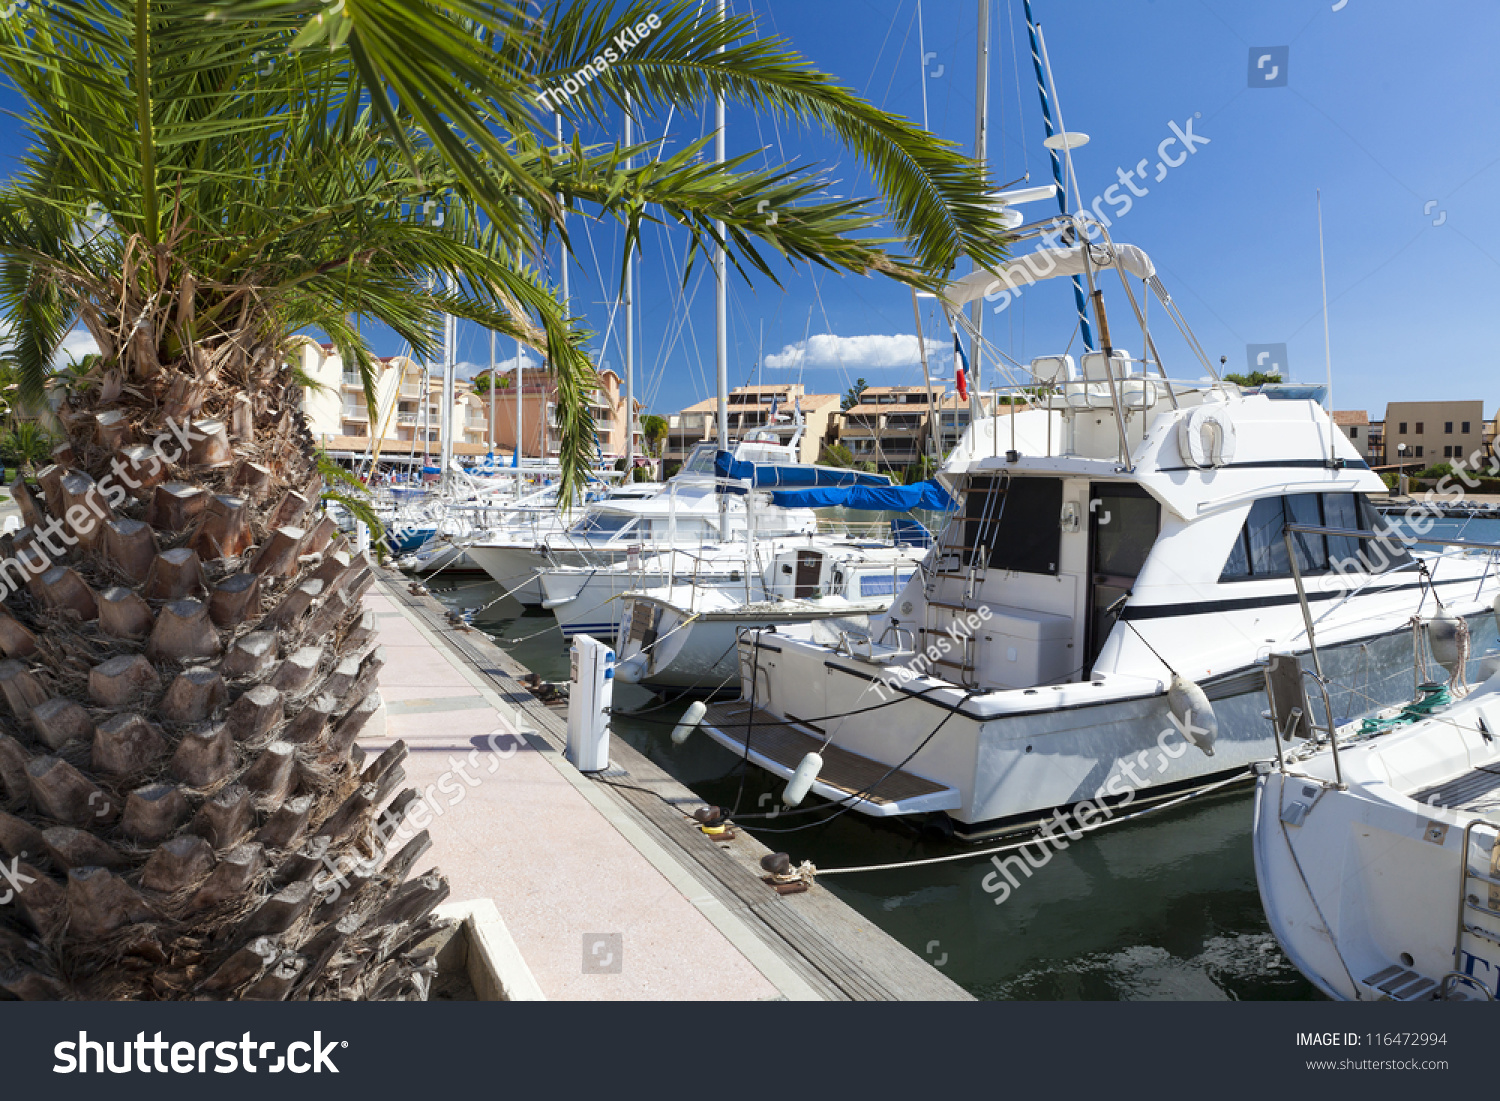 Hotel Port Beach Gruissan Marina Gruissan Many Sailing Yachts South Stock Photo Edit Now